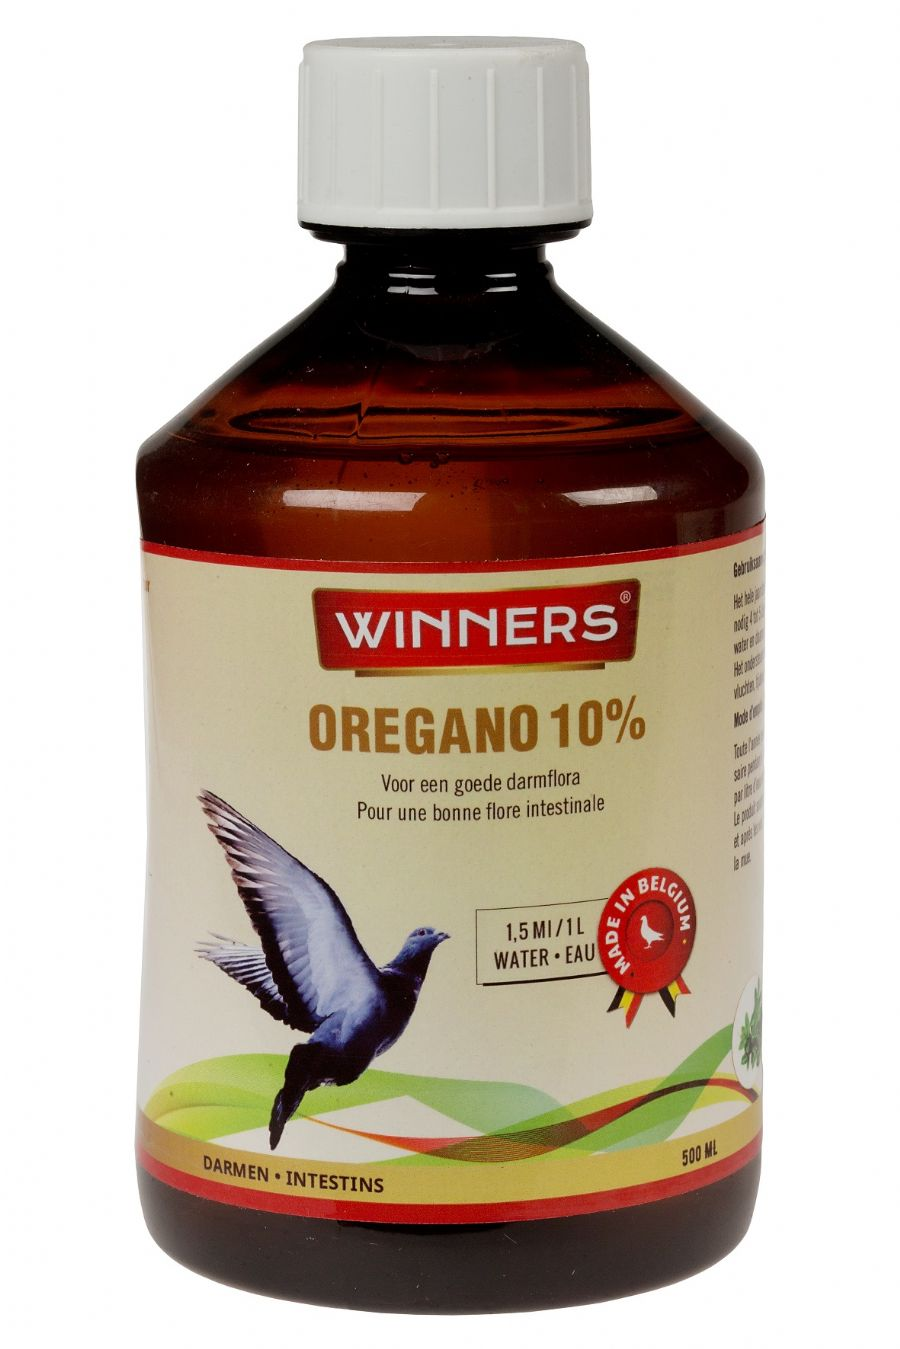 81005_Winners_Oregano10%_500 ml.jpg